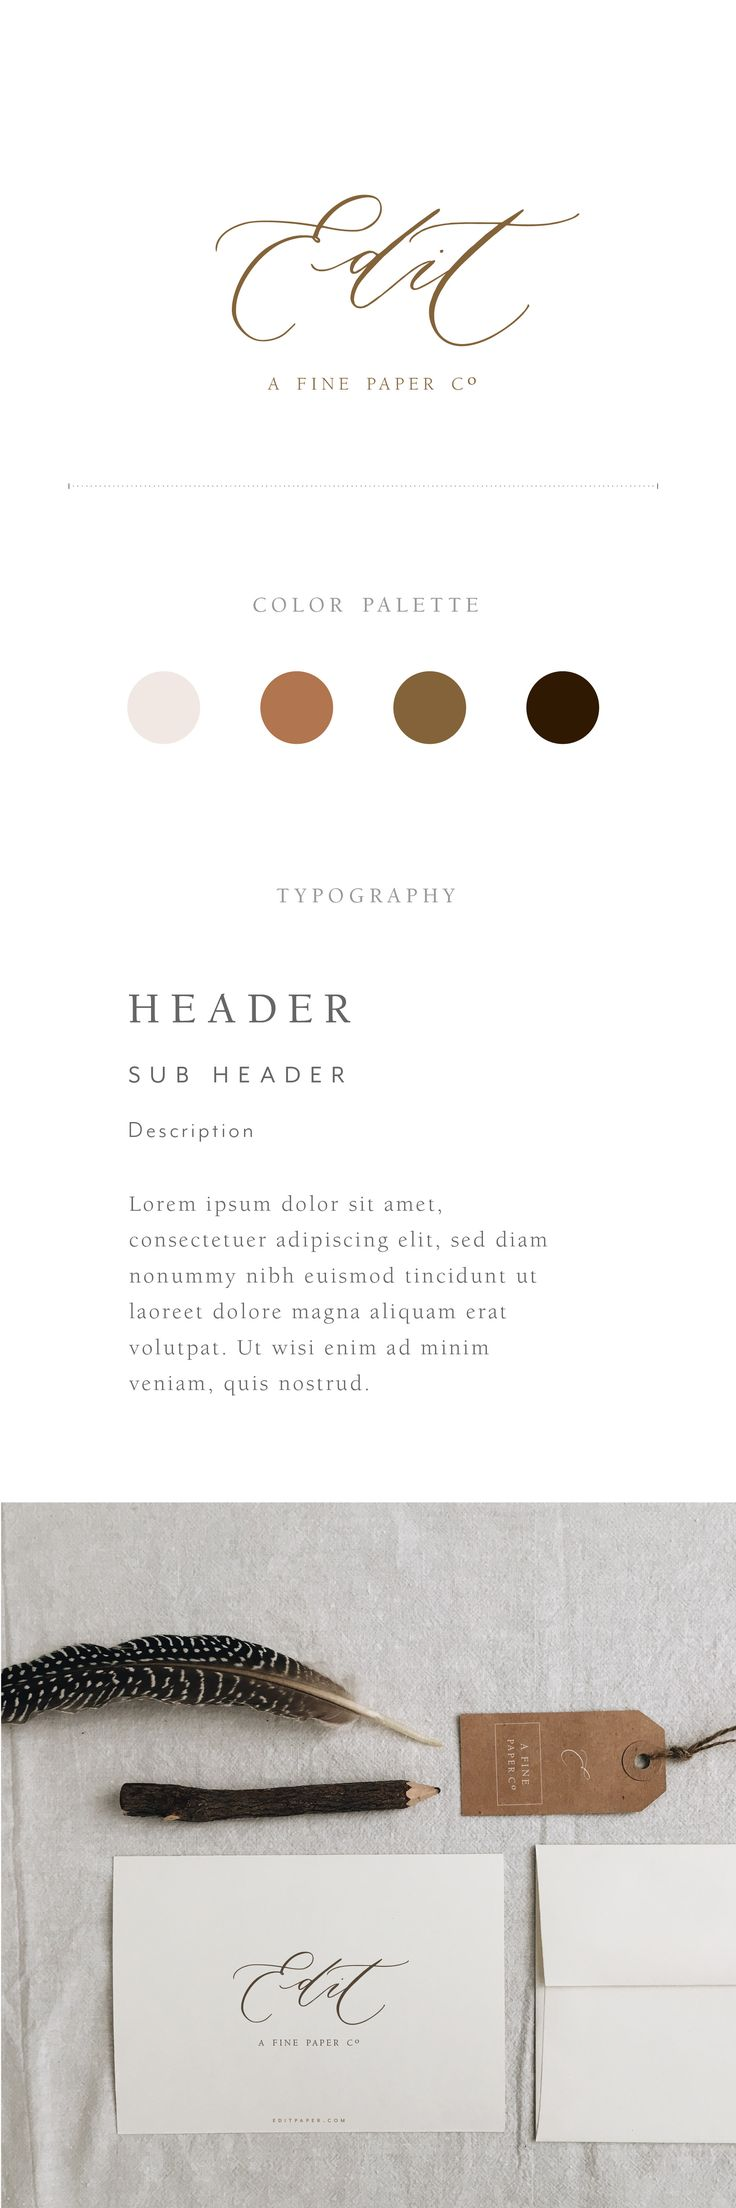 Edit Paper Co. branding by Andrea Crouse for Rare Bird Font Foundry using Specimen II in logo. Just beautiful!